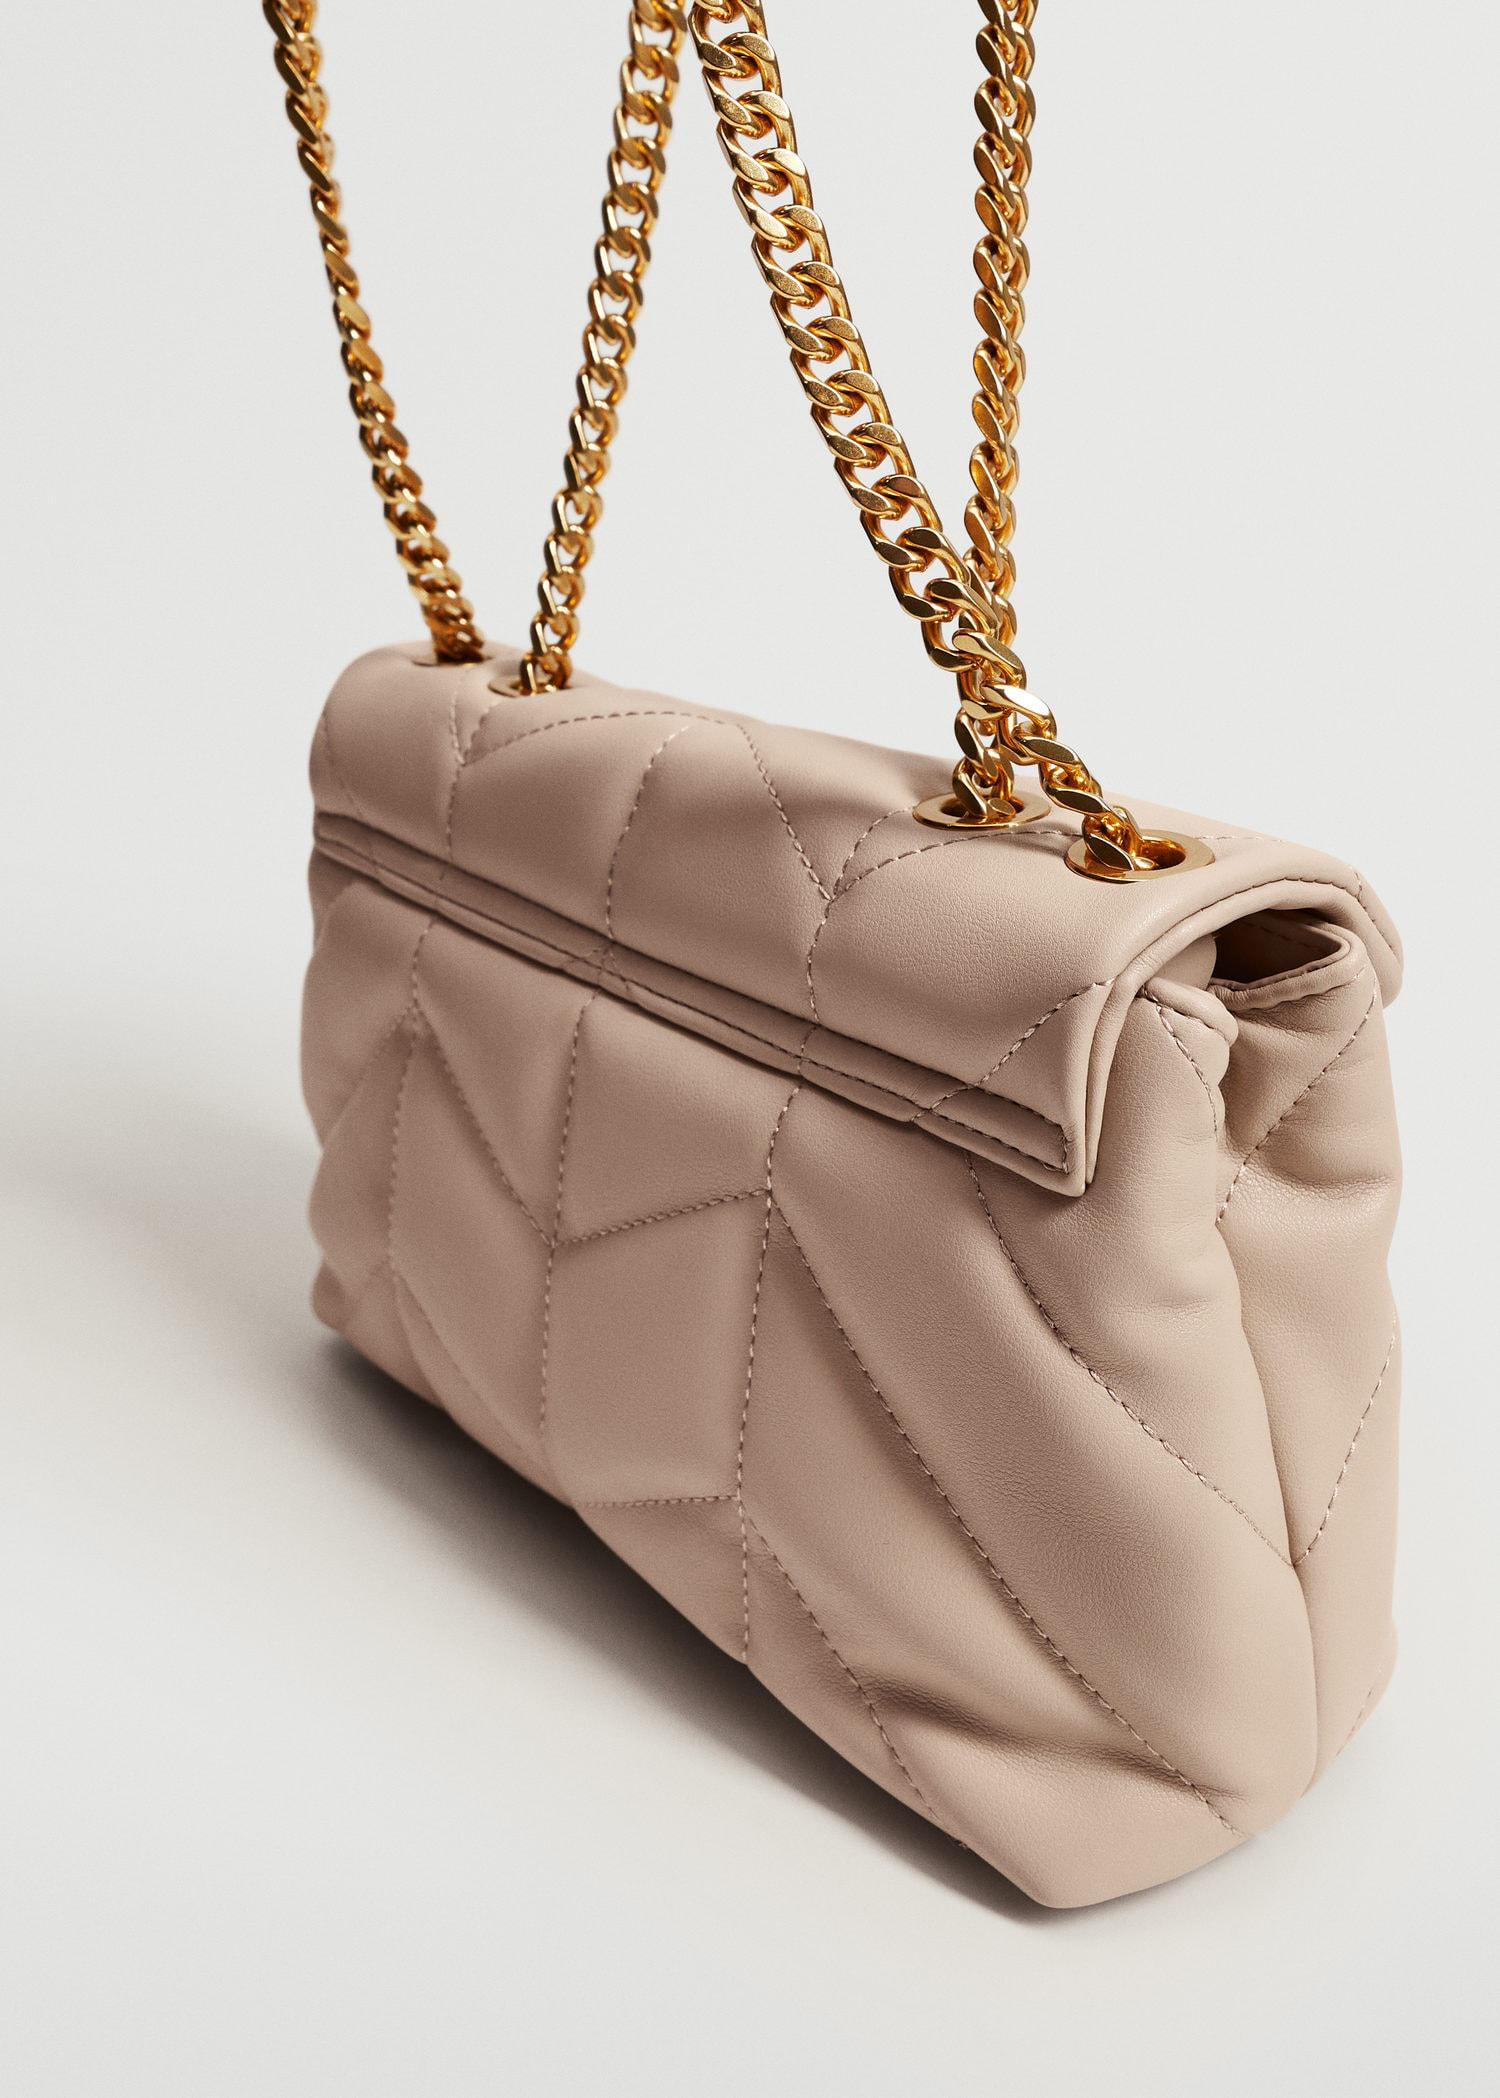 Quilted chain bag 2